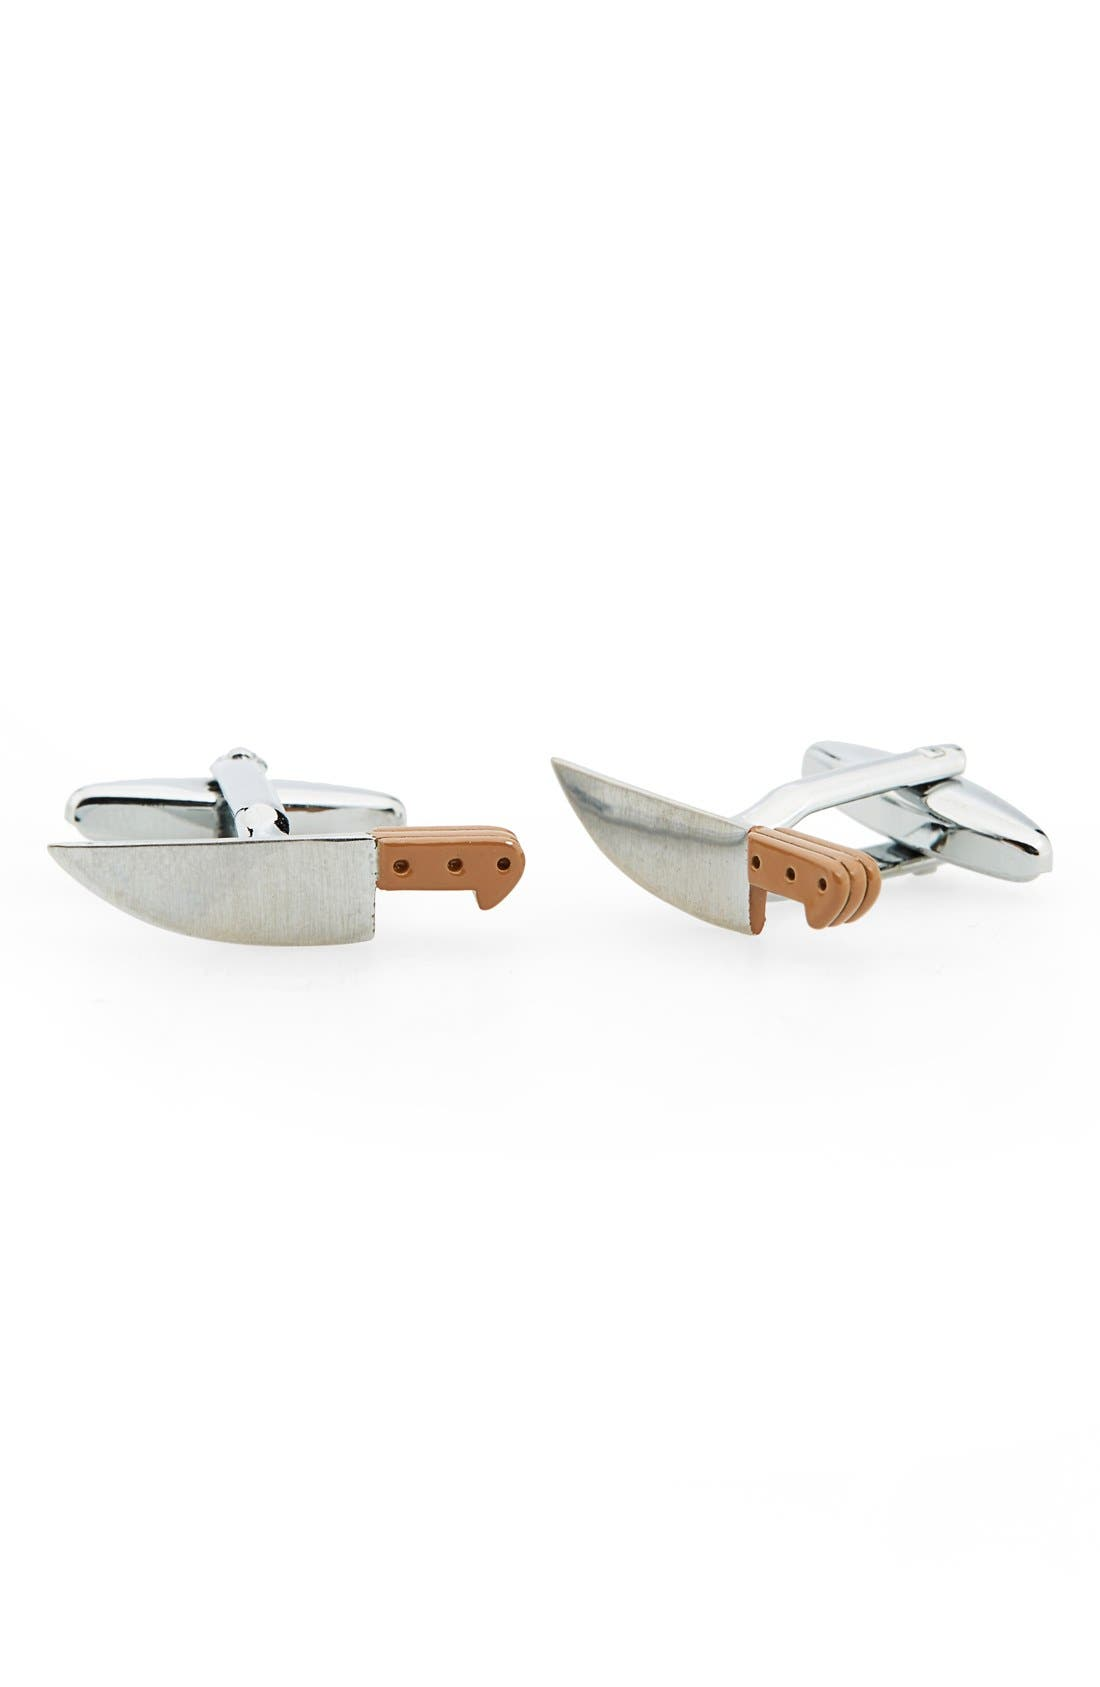 'Knife' Cuff Links,                             Main thumbnail 1, color,                             040